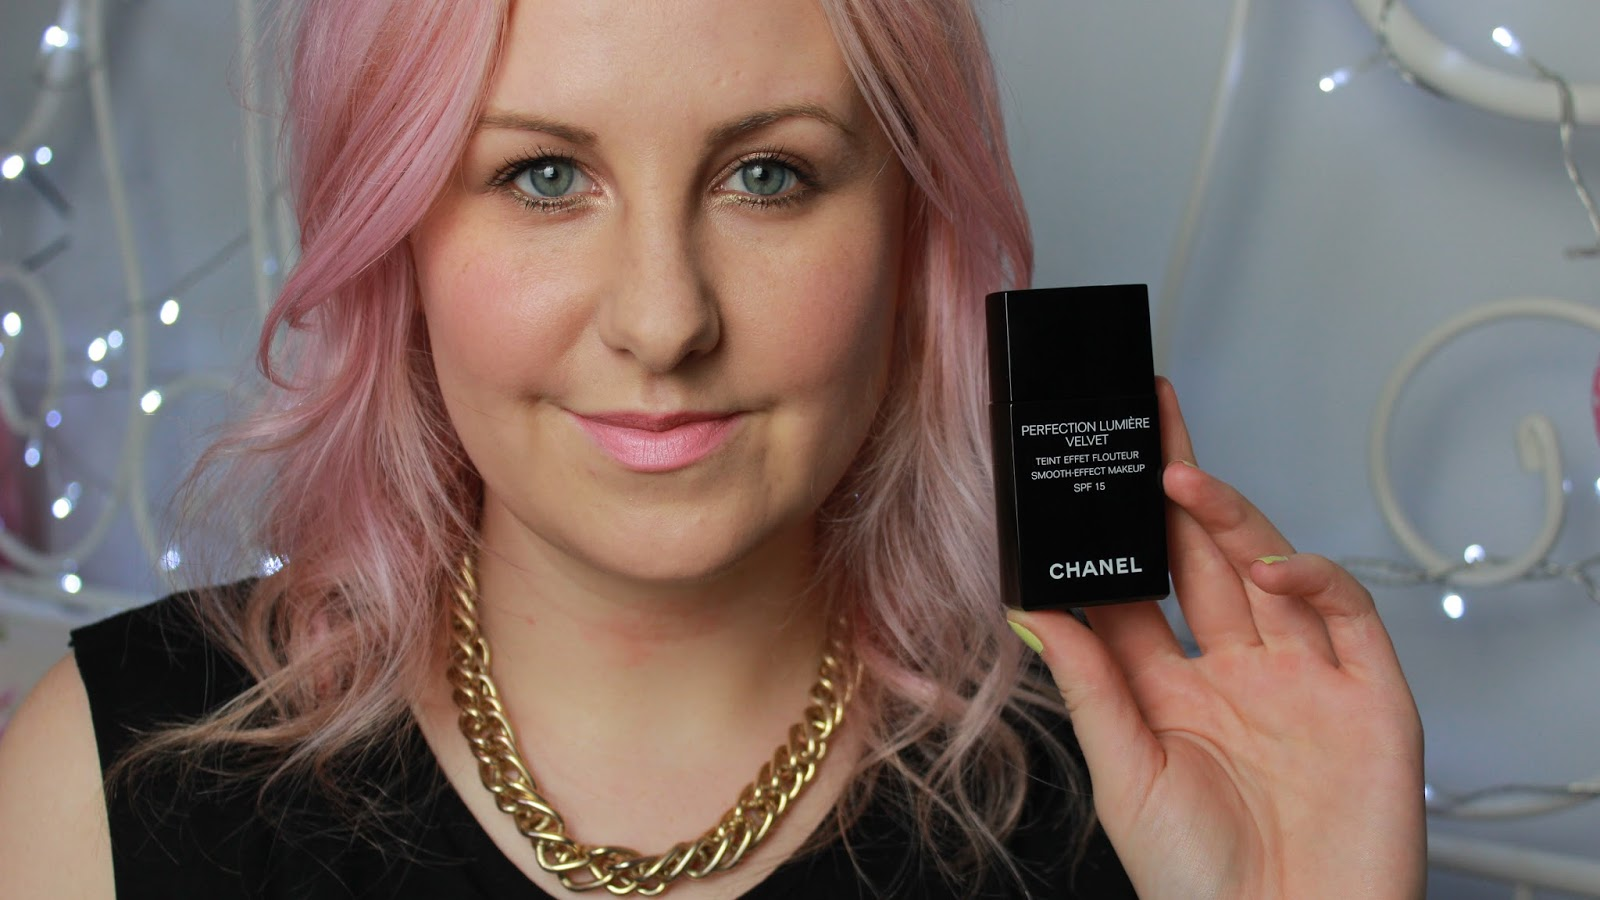 chanel-perfection-lumiere-velvet-review, chanel-perfection-lumiere-velvet